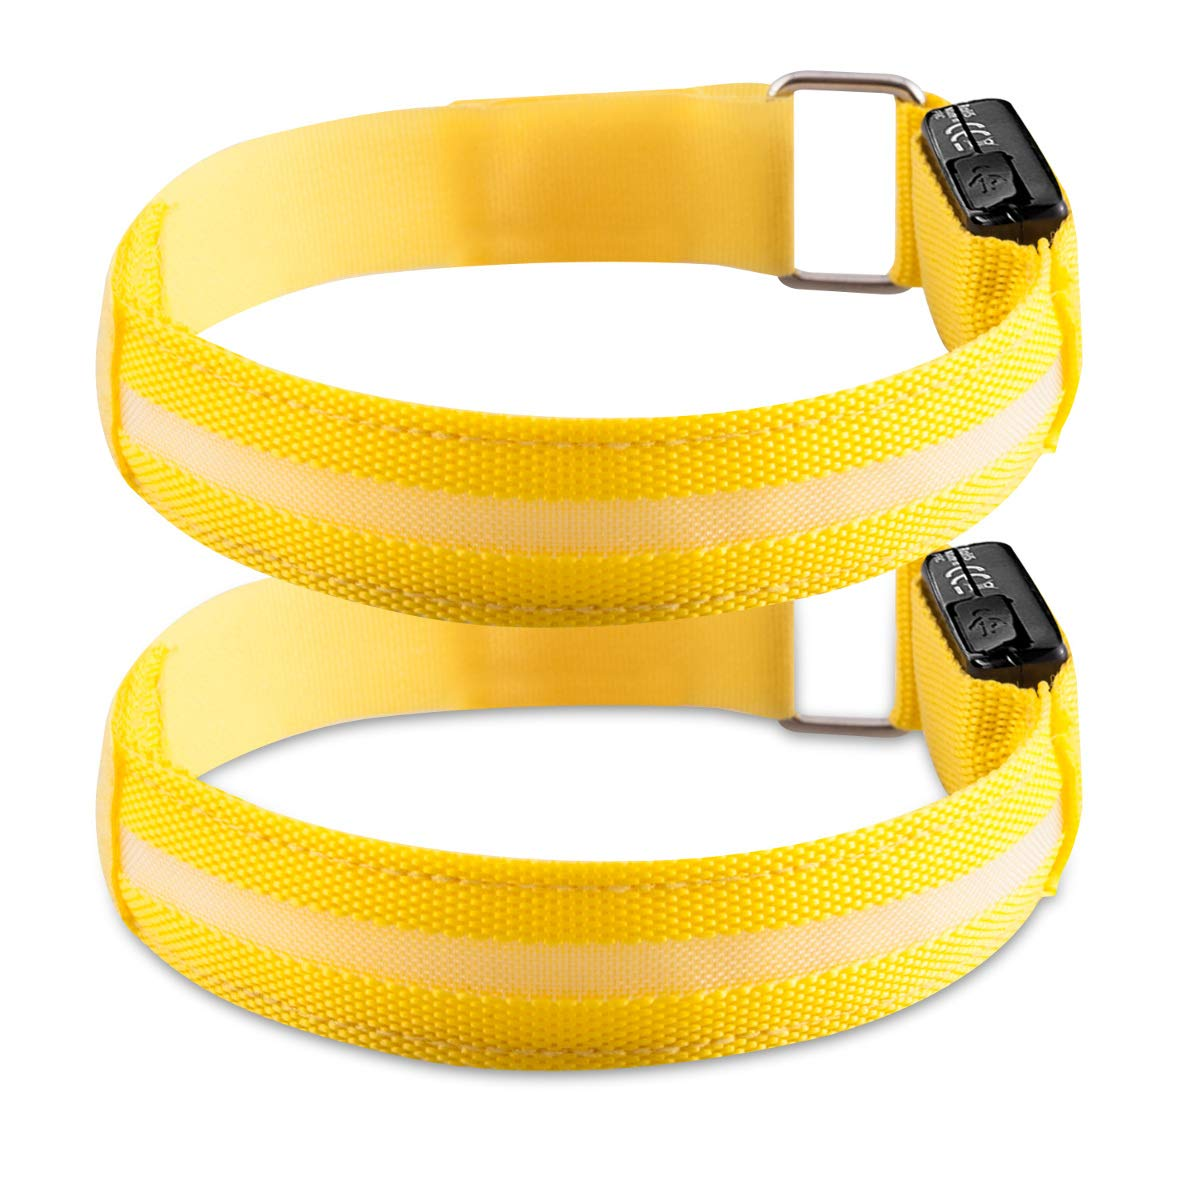 Kwmobile 2X LED Safety Bands yellow